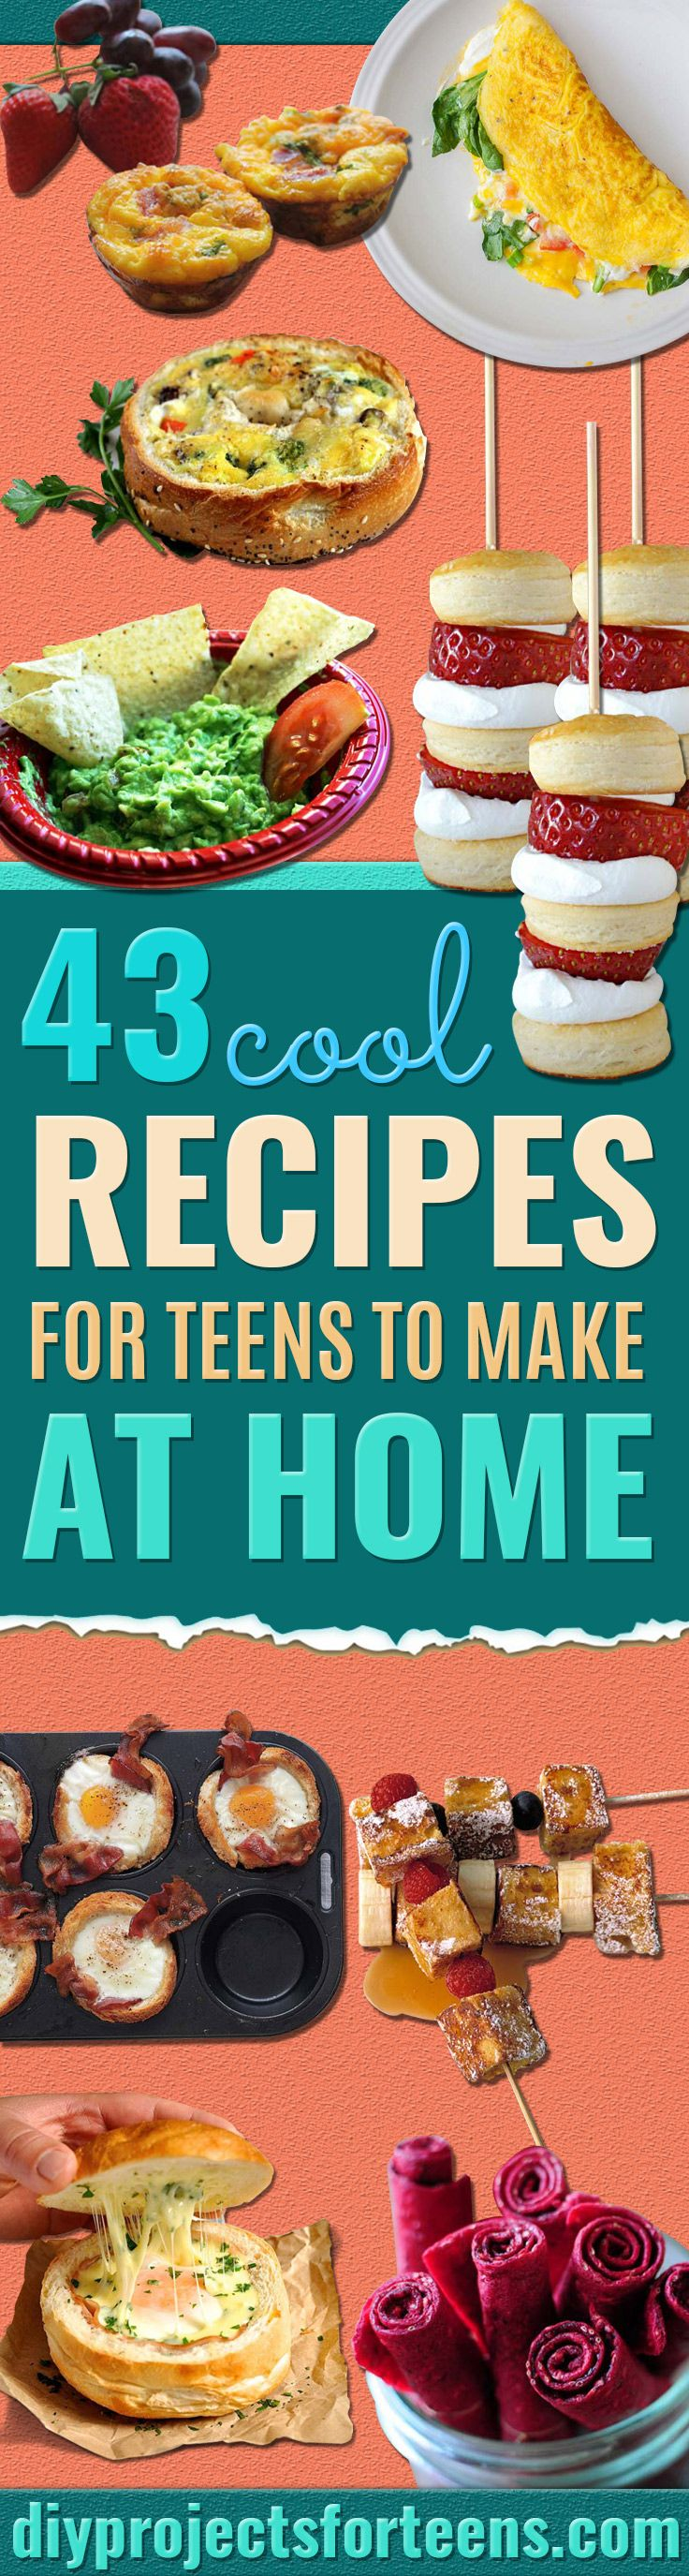 60 best Fun Ideas for Gabe images on Pinterest   Fun ideas, For kids ...